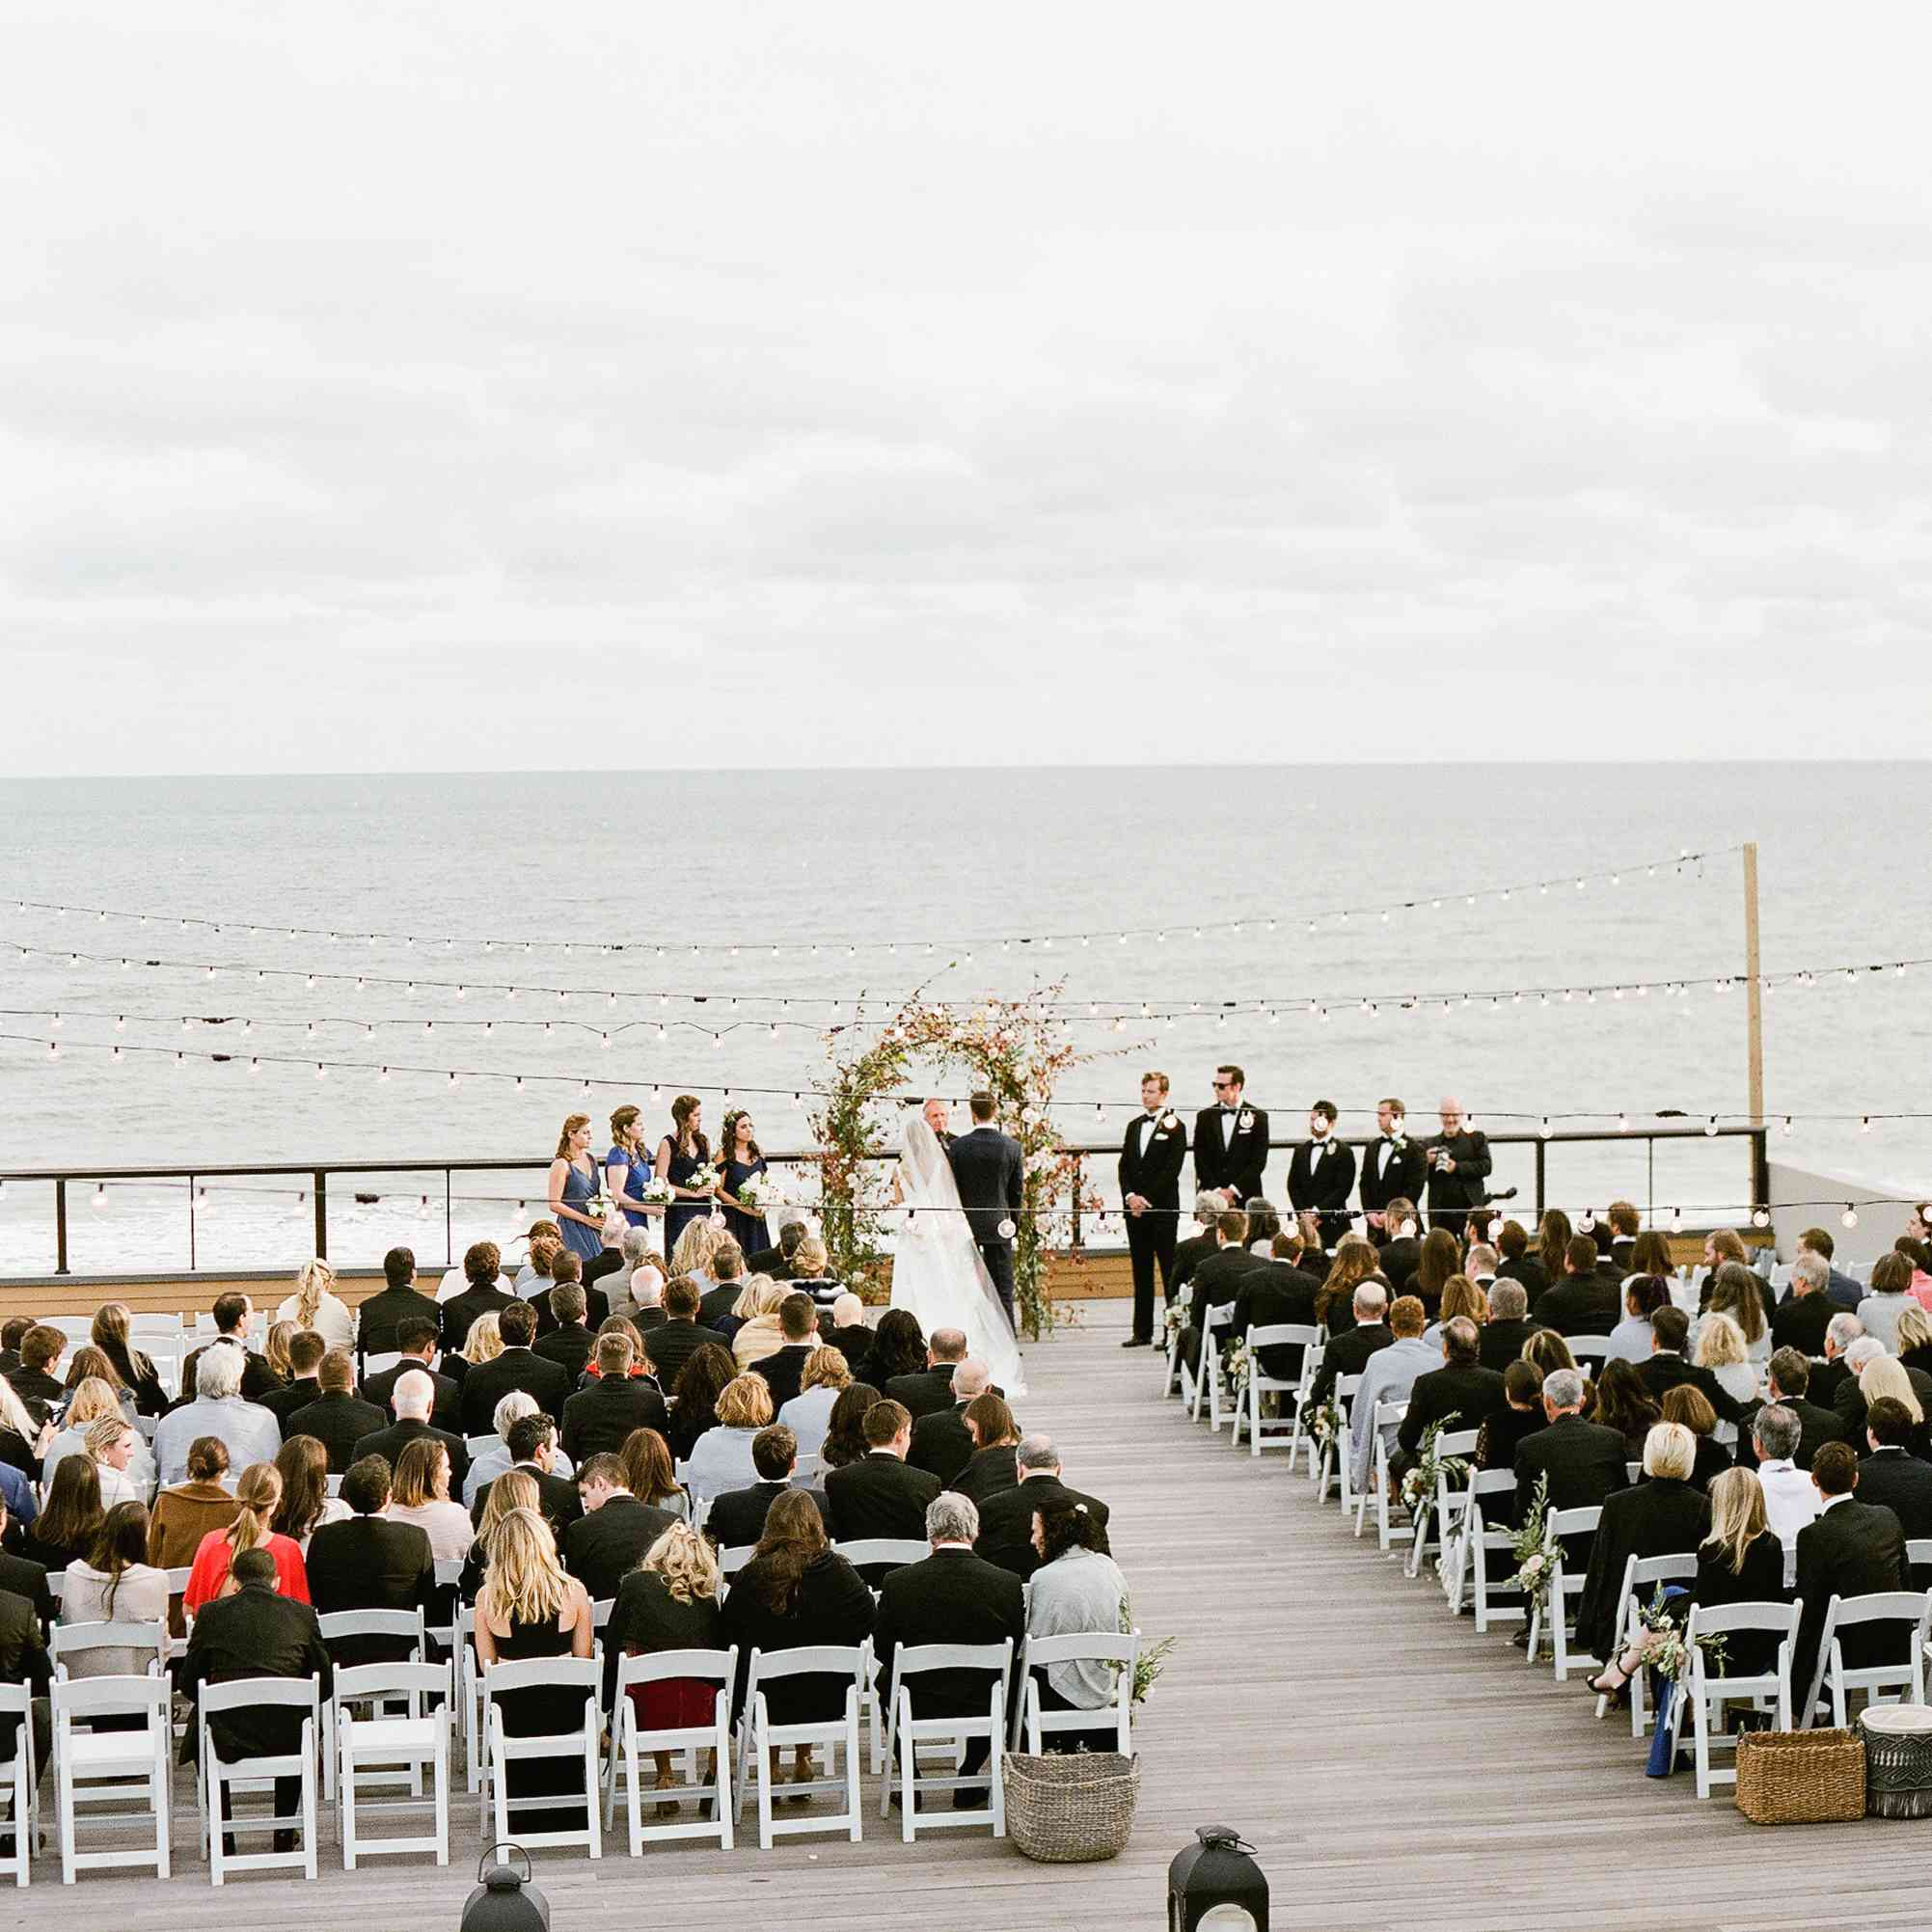 <p>wedding ceremony on a dock</p><br><br>